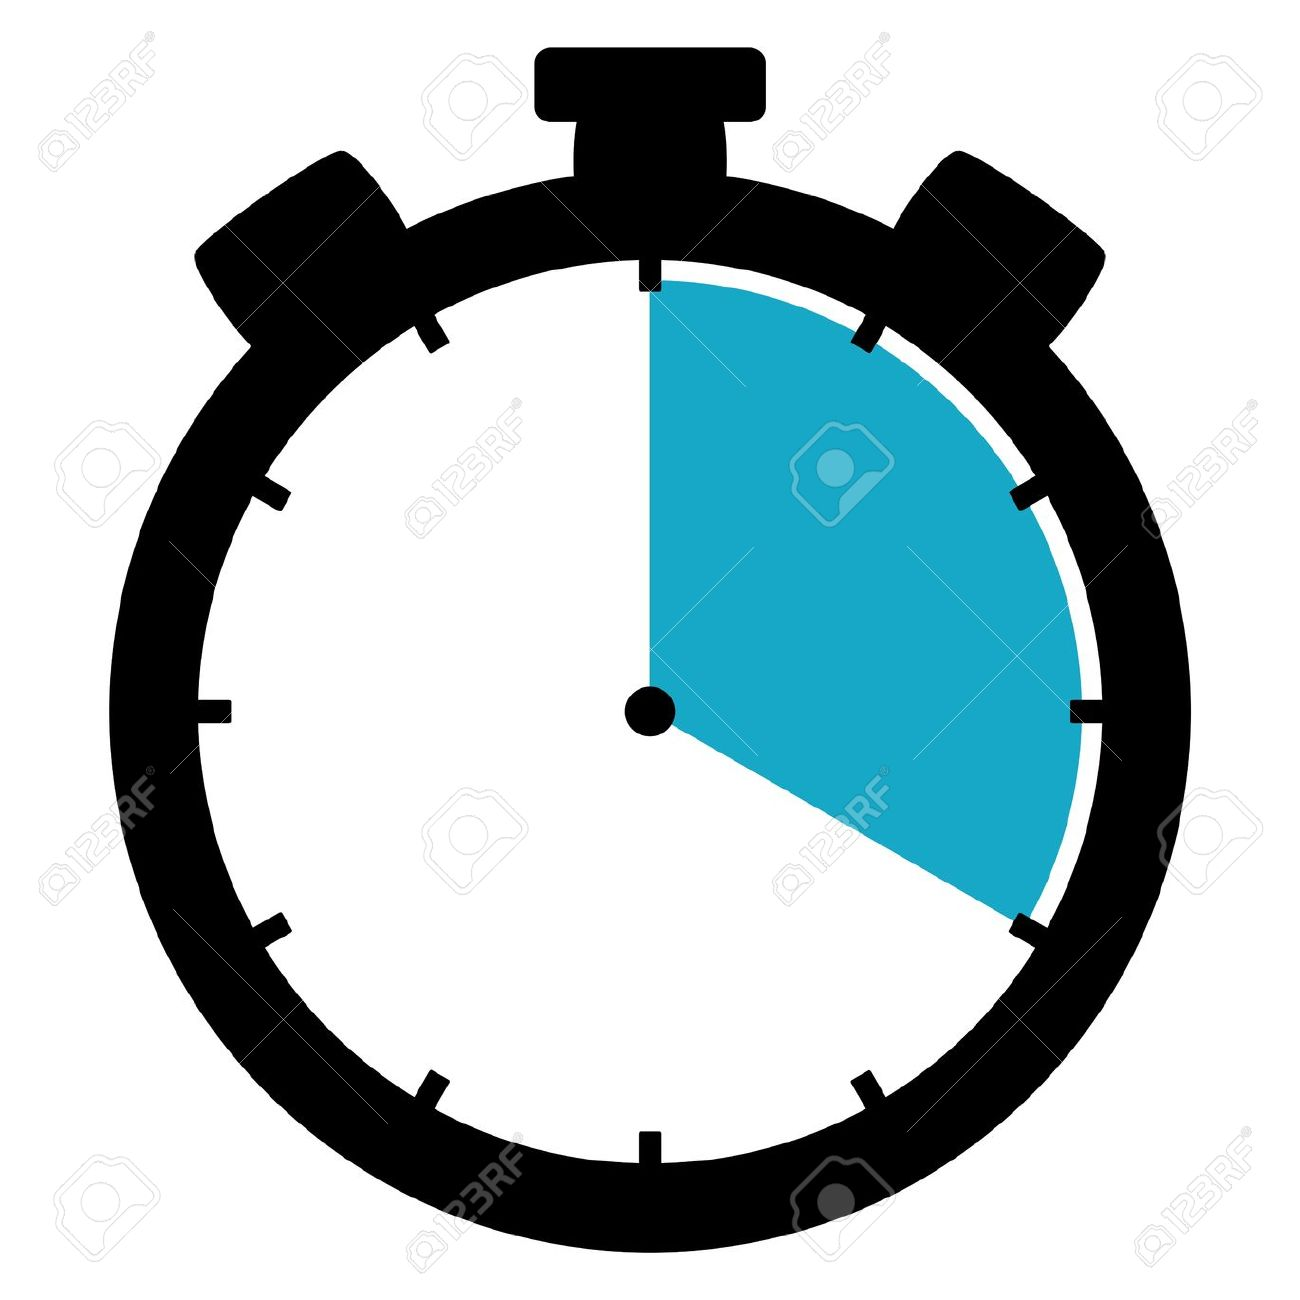 stopwatch clipart. timer stopwatch 20 seconds minutes 4 hours clipart u